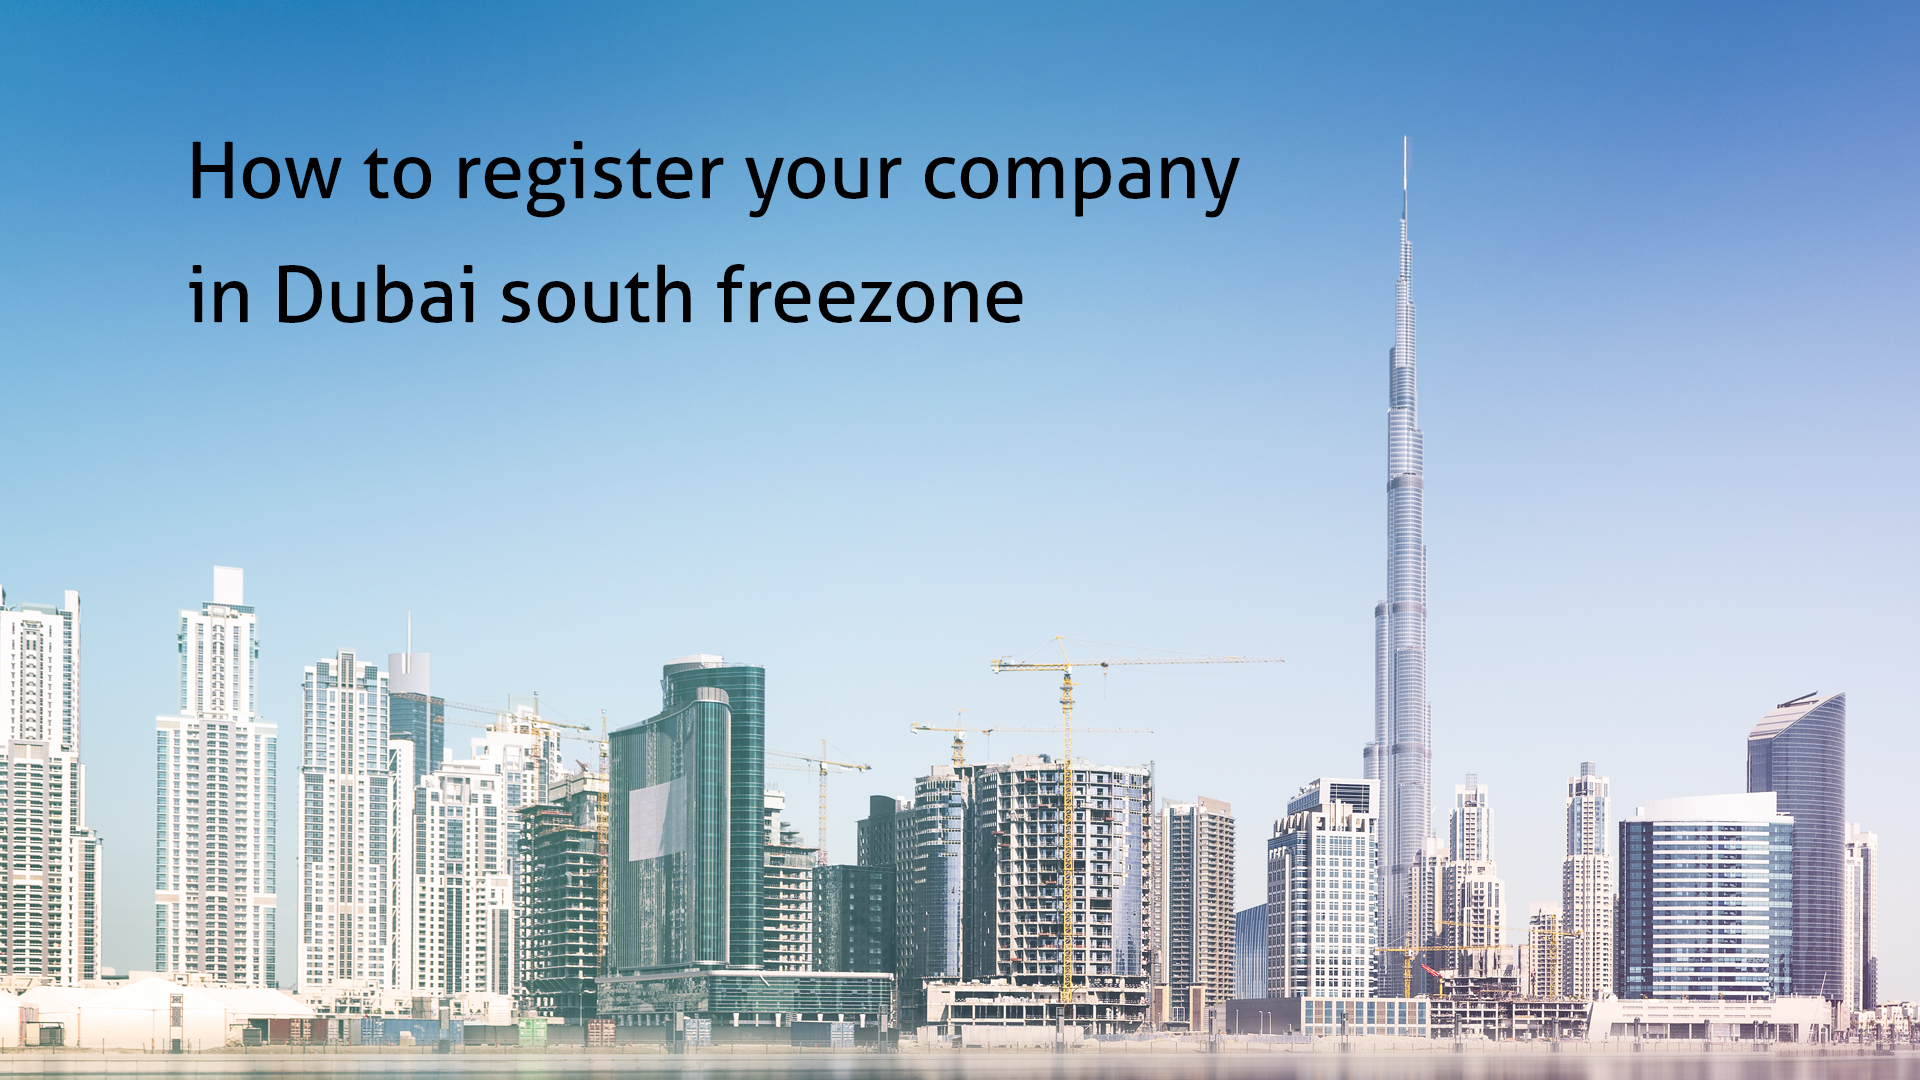 How to register your company in Dubai south freezone